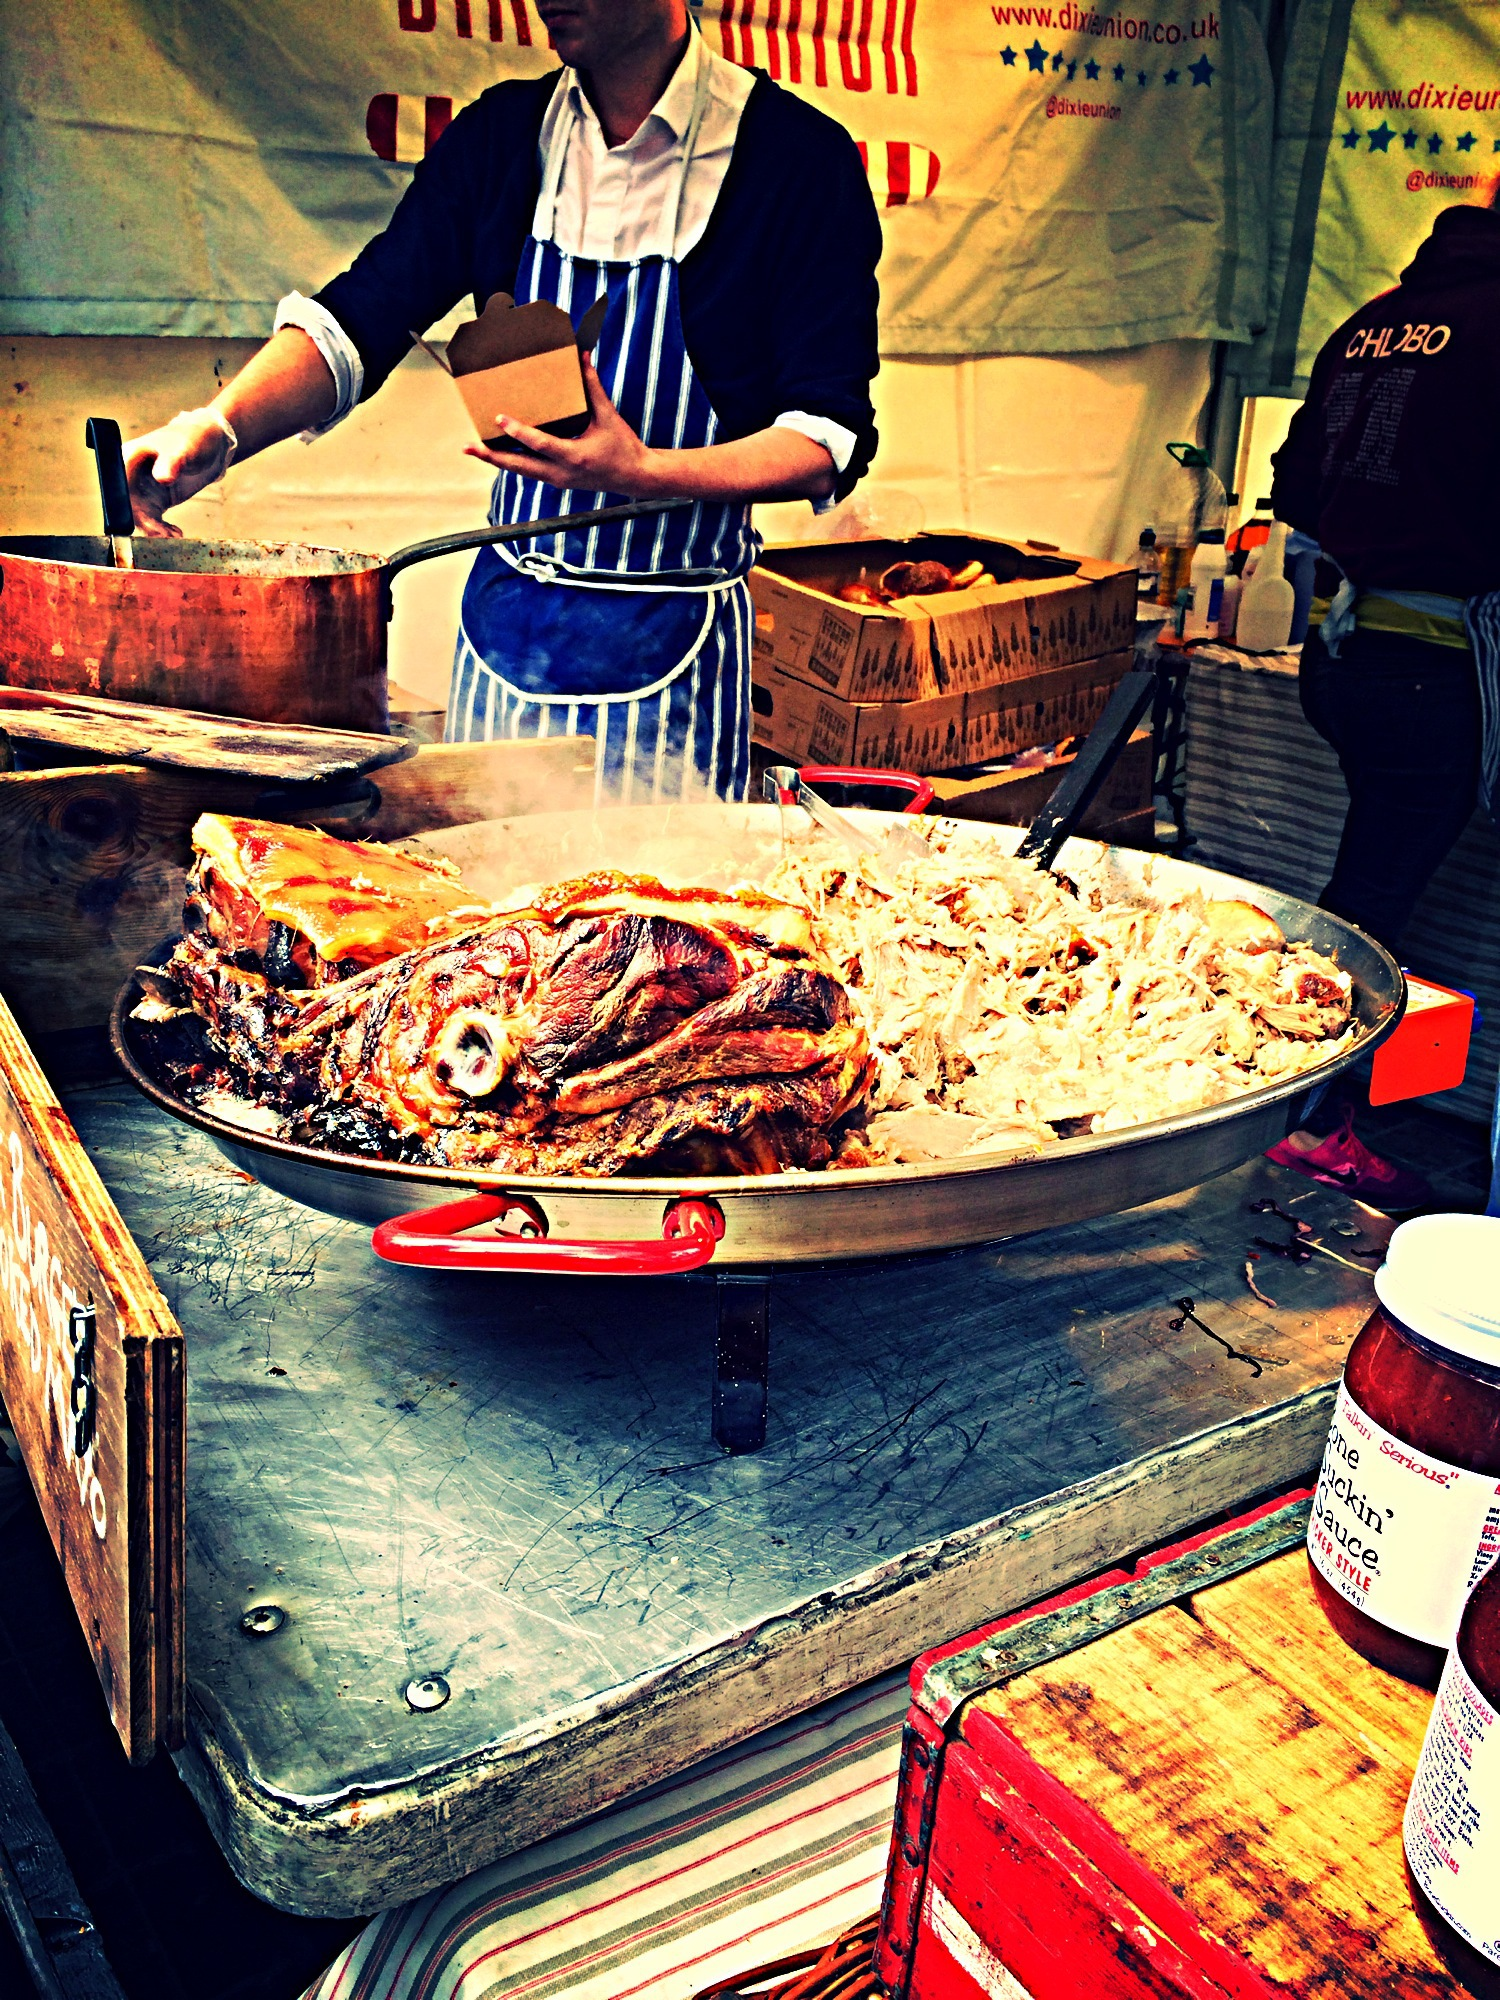 Dixie union food stall at covent garden london for American cuisine in london